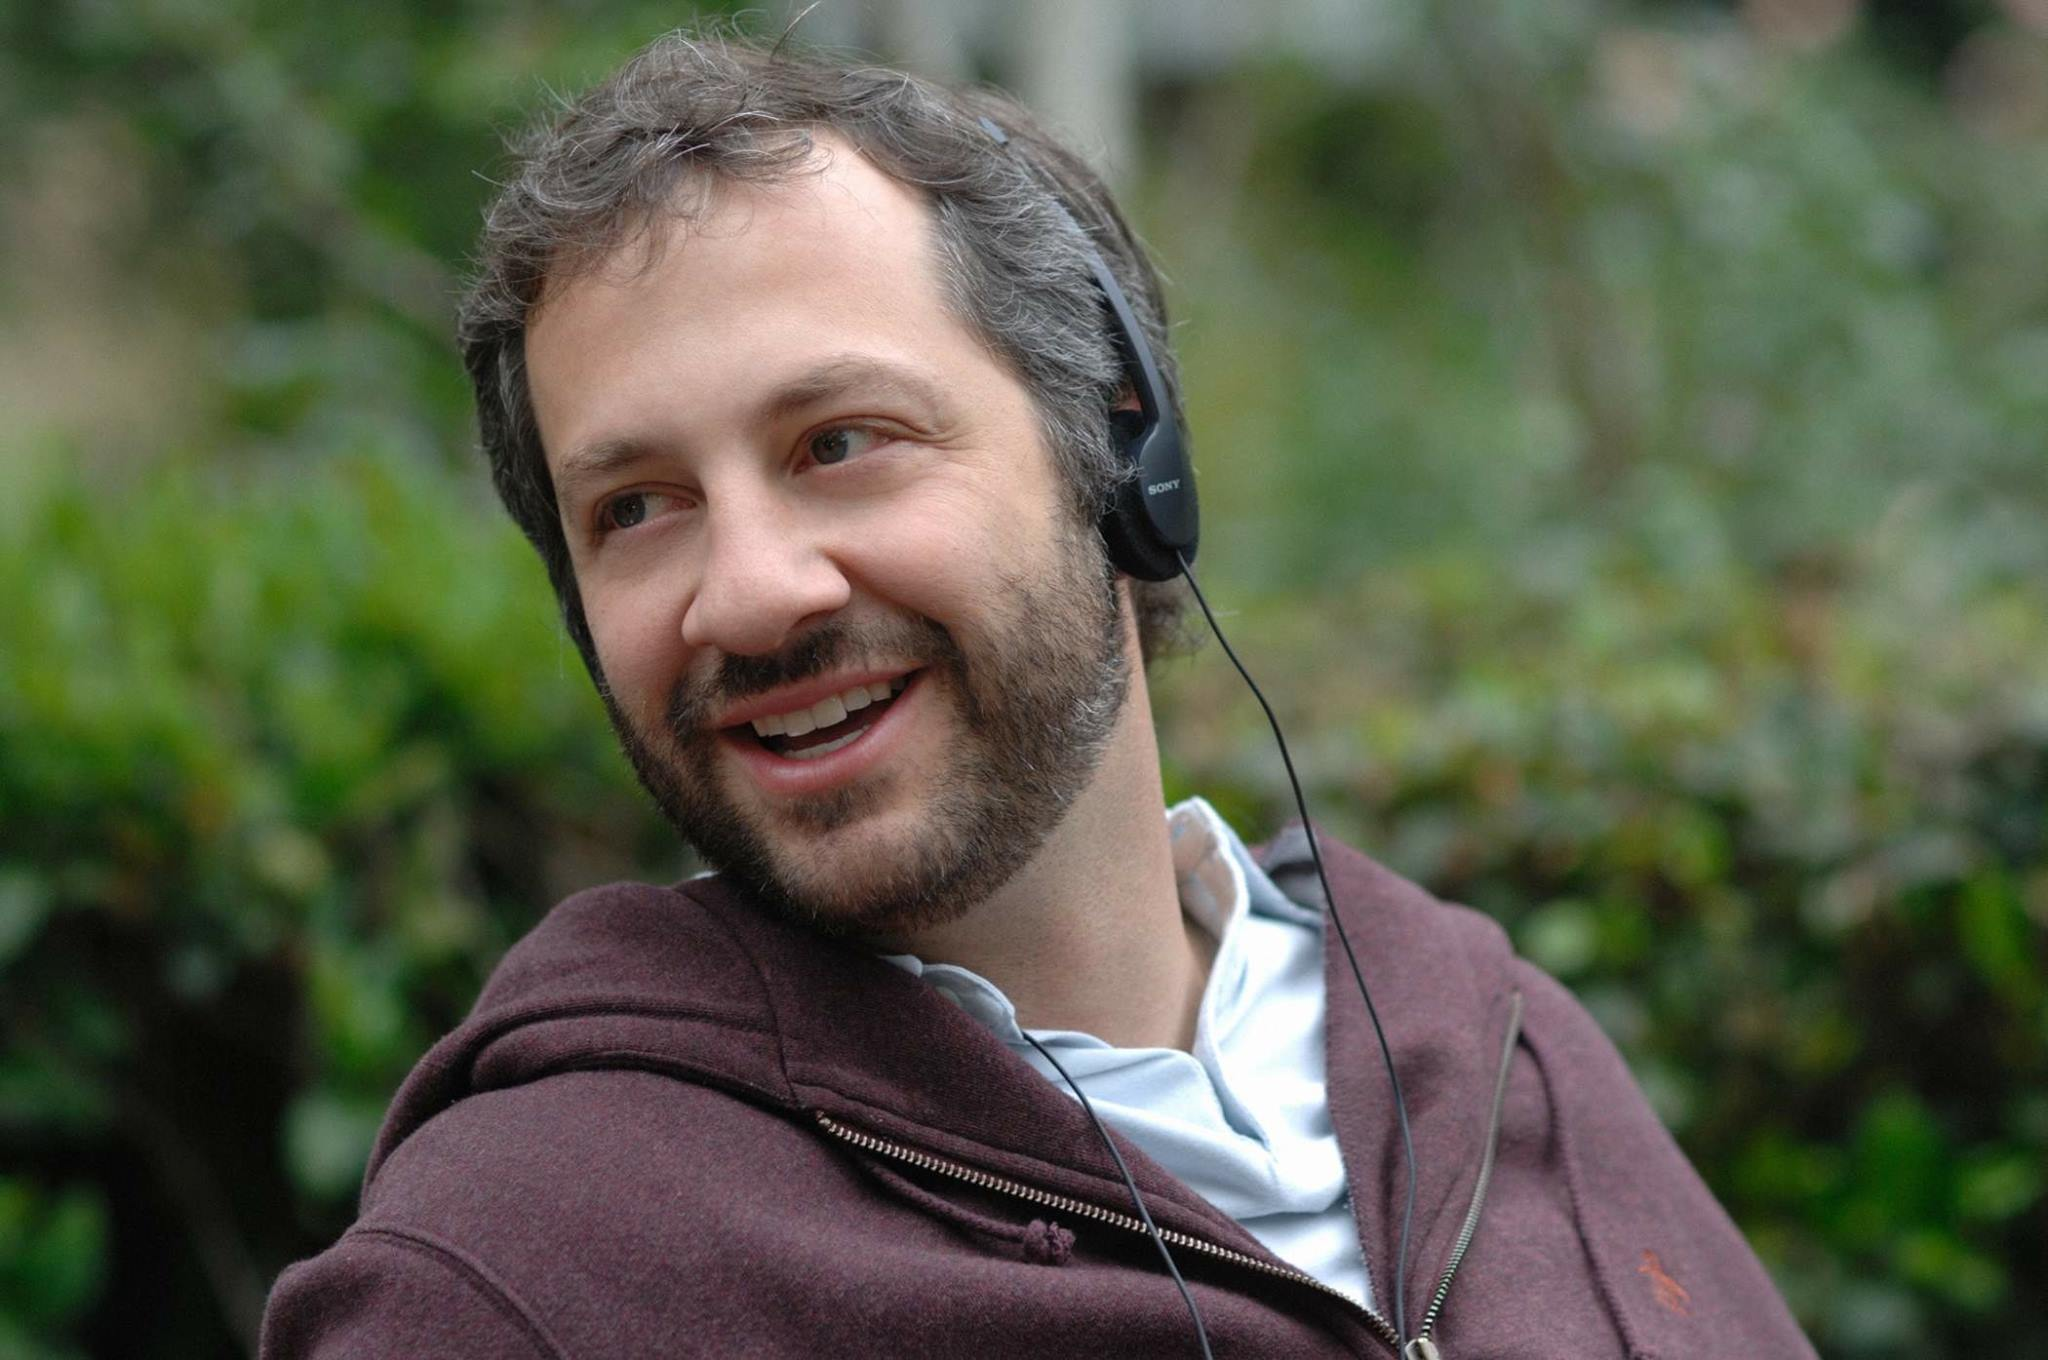 Judd Apatow will be honored by the San Diego Film Festival and presented with a Visionary Filmmaker Award on Oct. 3 at the Museum of Contemporary Art in La Jolla. Official Facebook image.